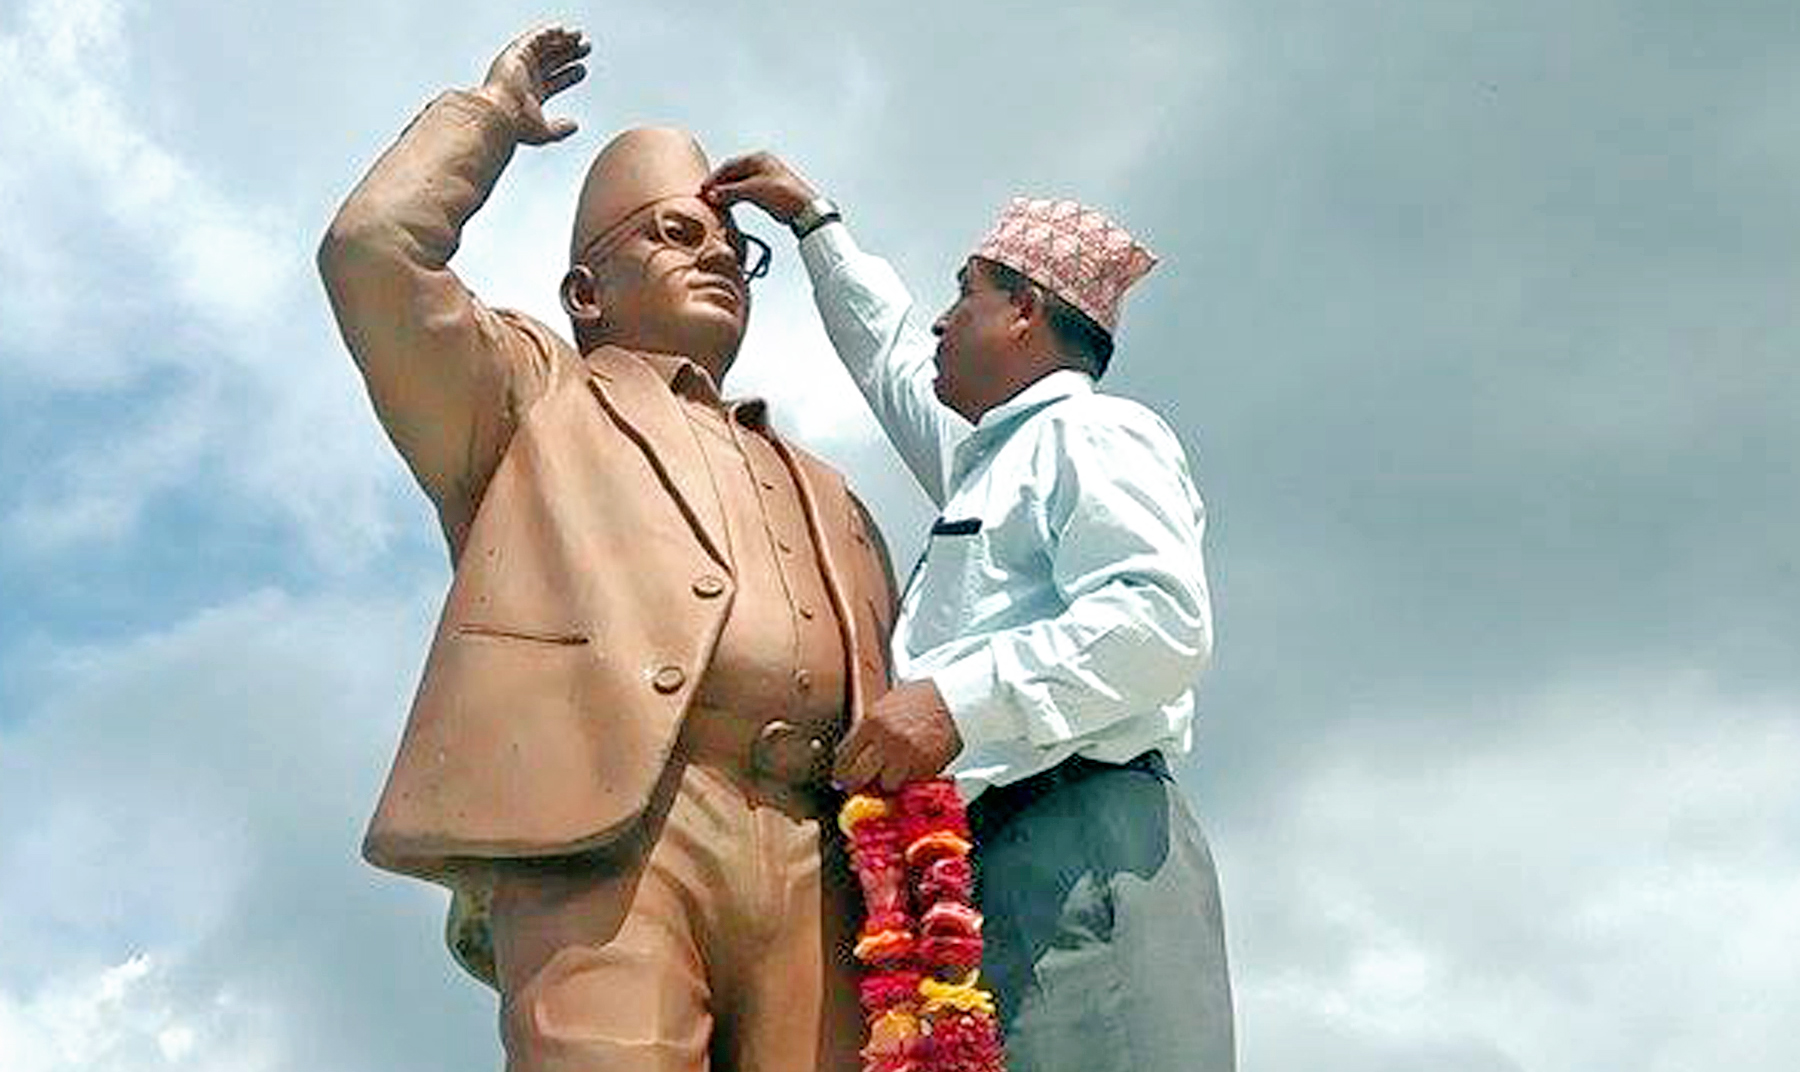 A man puts Tika and Wrath at the Statue of CPN-UML leader Madan Bhandari on the occasion of 65th birth anniversary in Urlabari, Morang district, on Tuesday, June 28, 2016. Photo: RSS